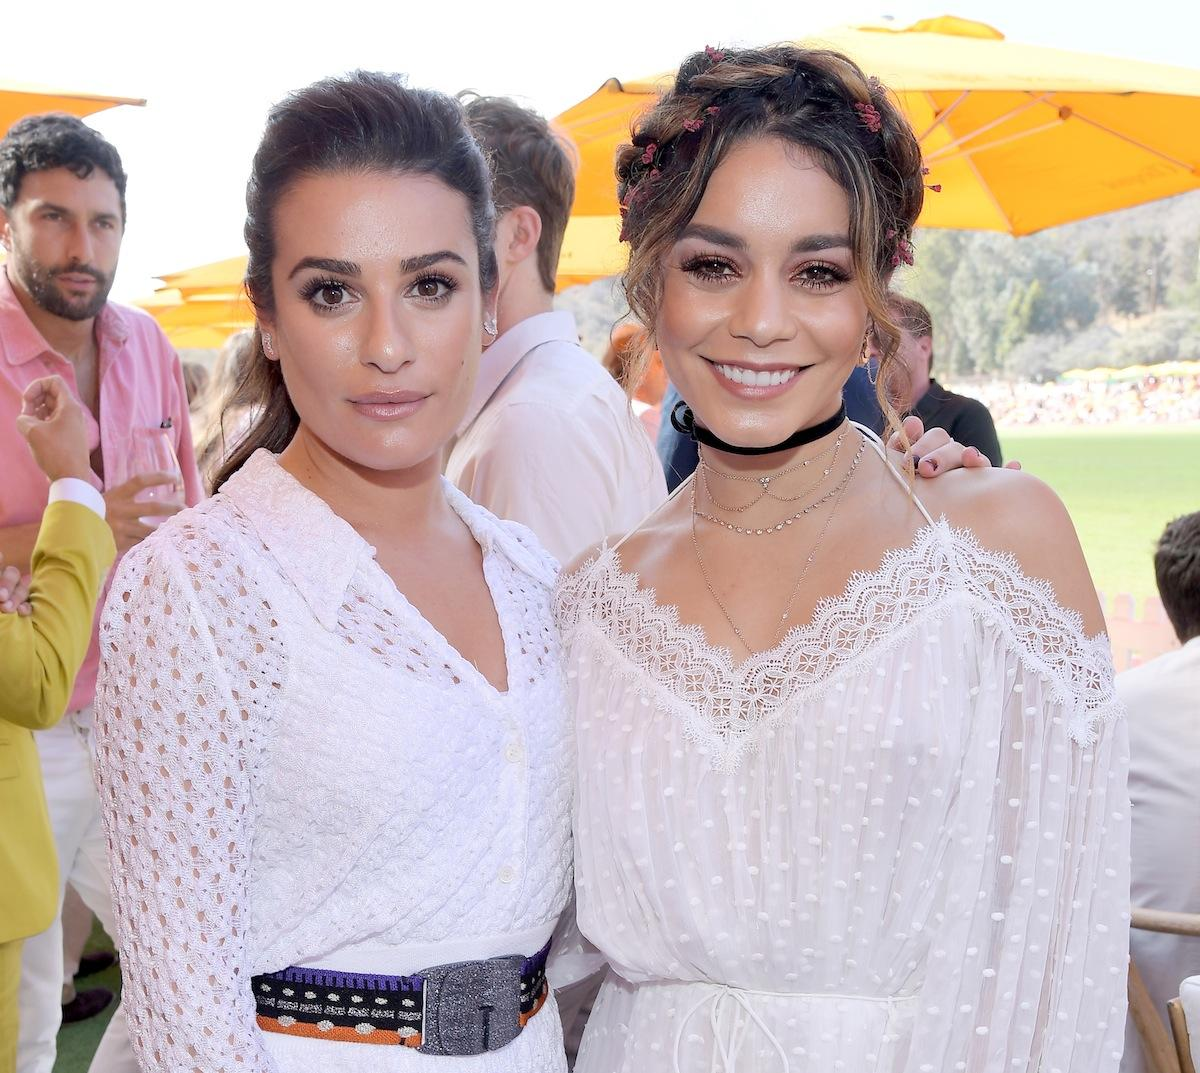 Lea Michele and Vanessa Hudgens